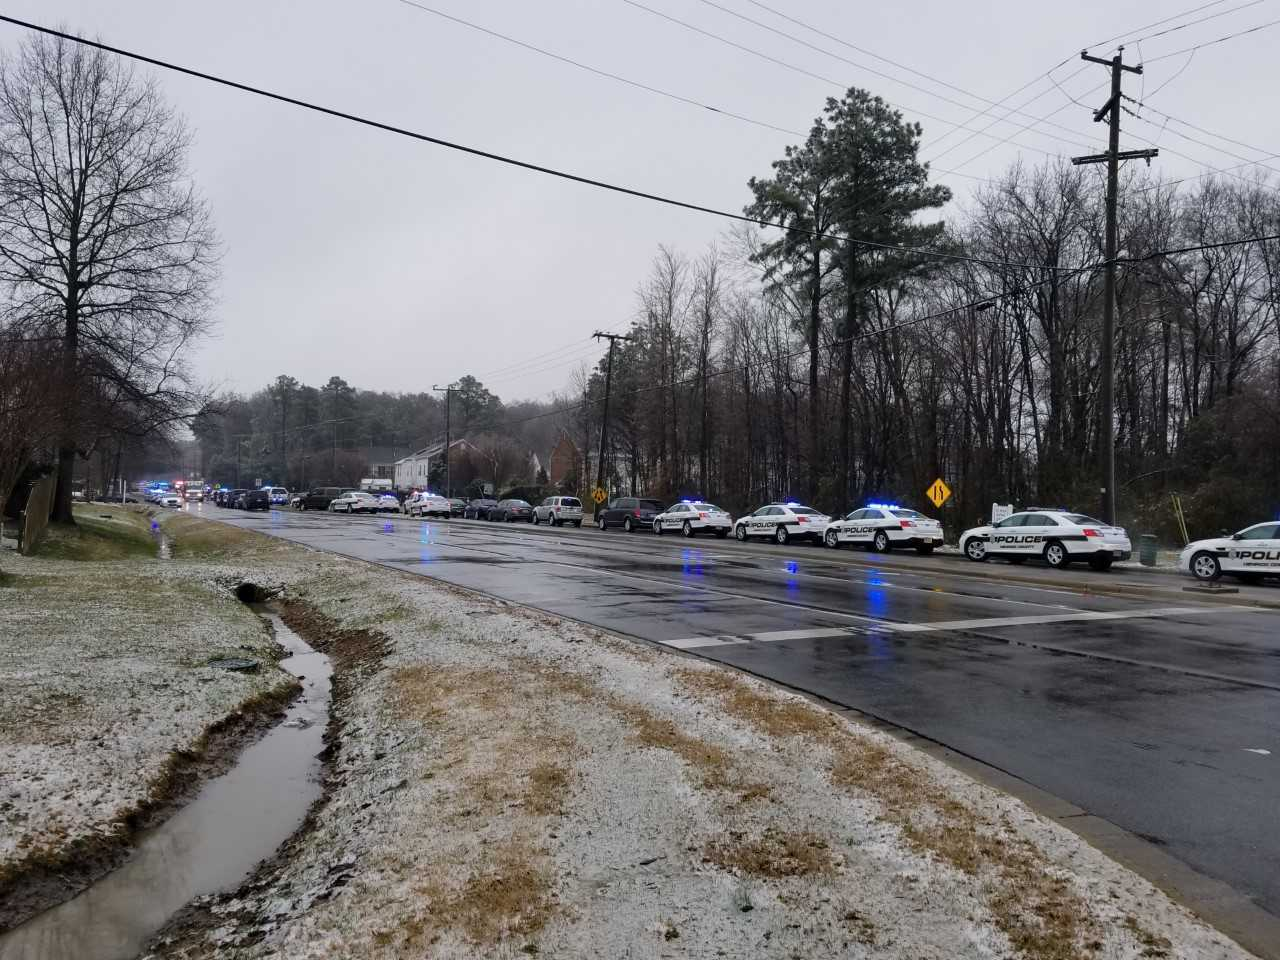 Photos: Police give 'all clear' at Henrico school after room-by-roomsearch